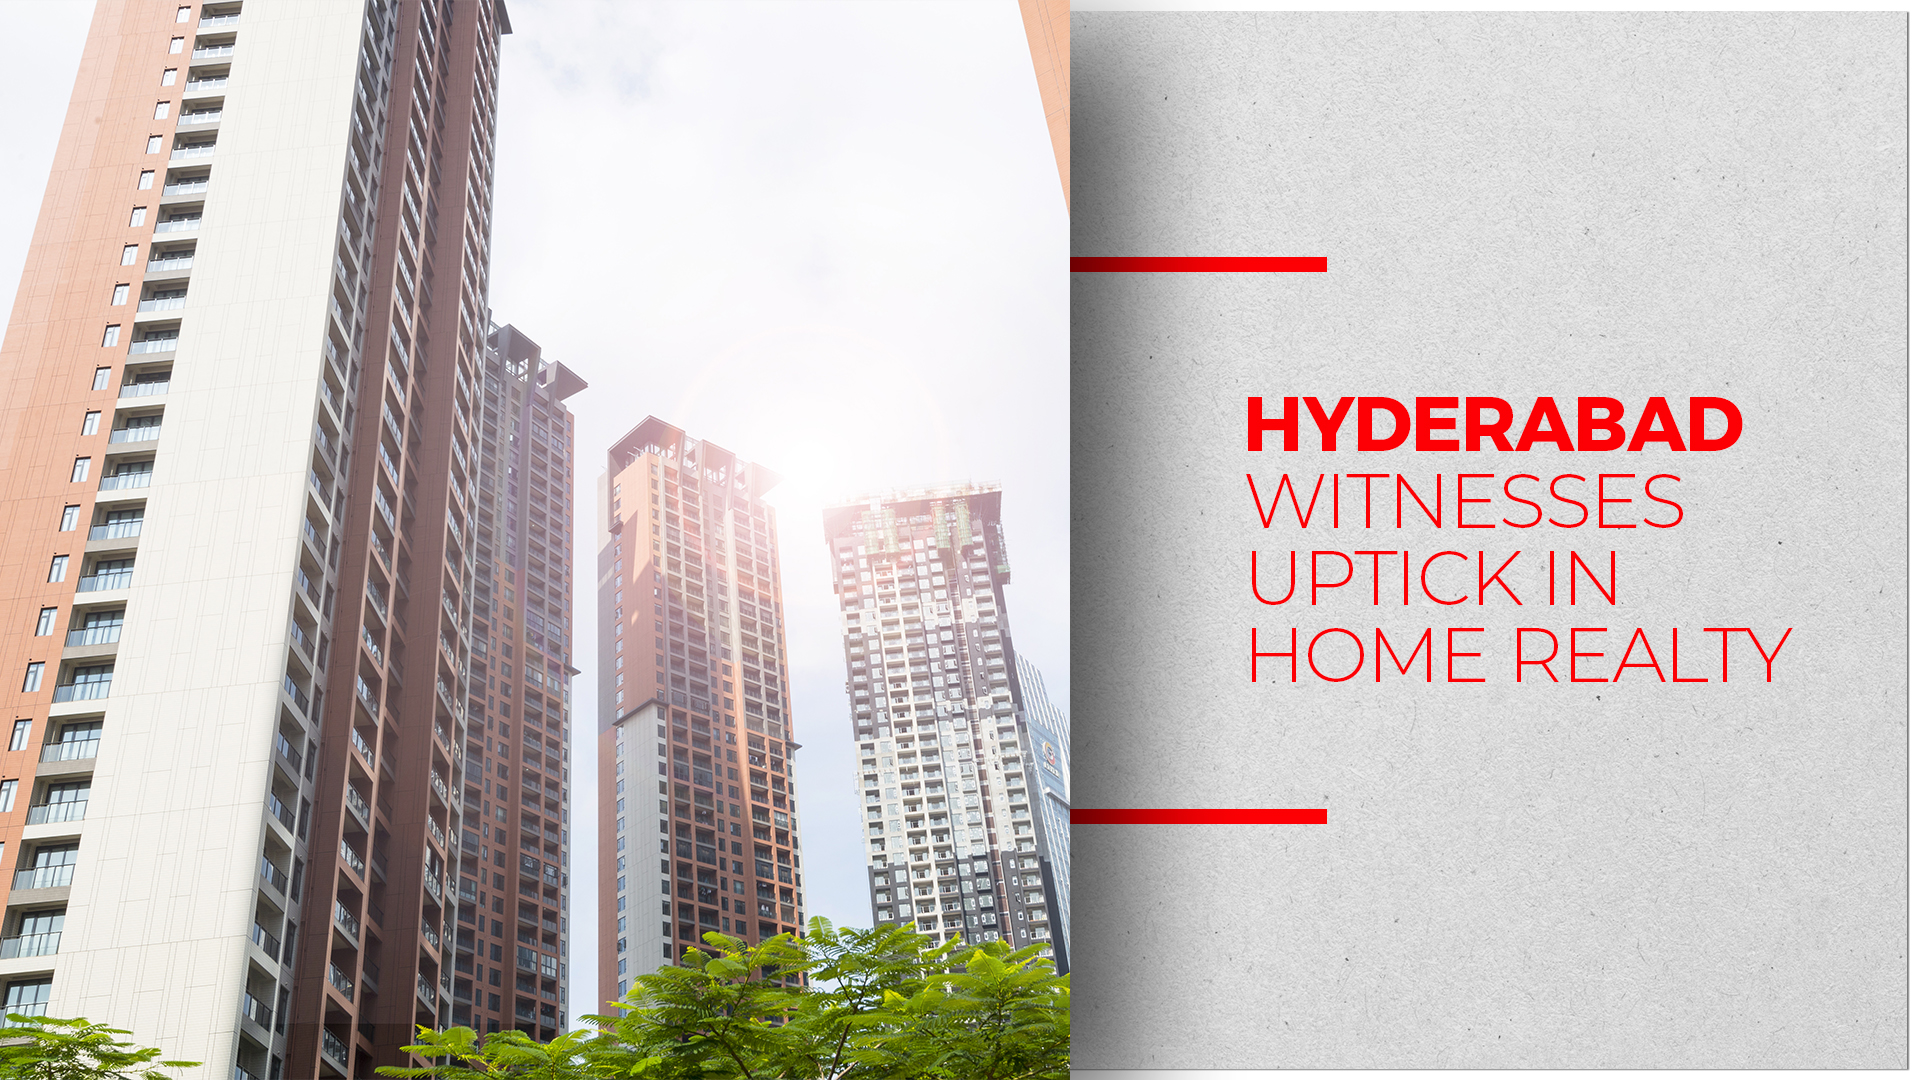 Hyderabad Observes An Upsurge In Residential Real Estate